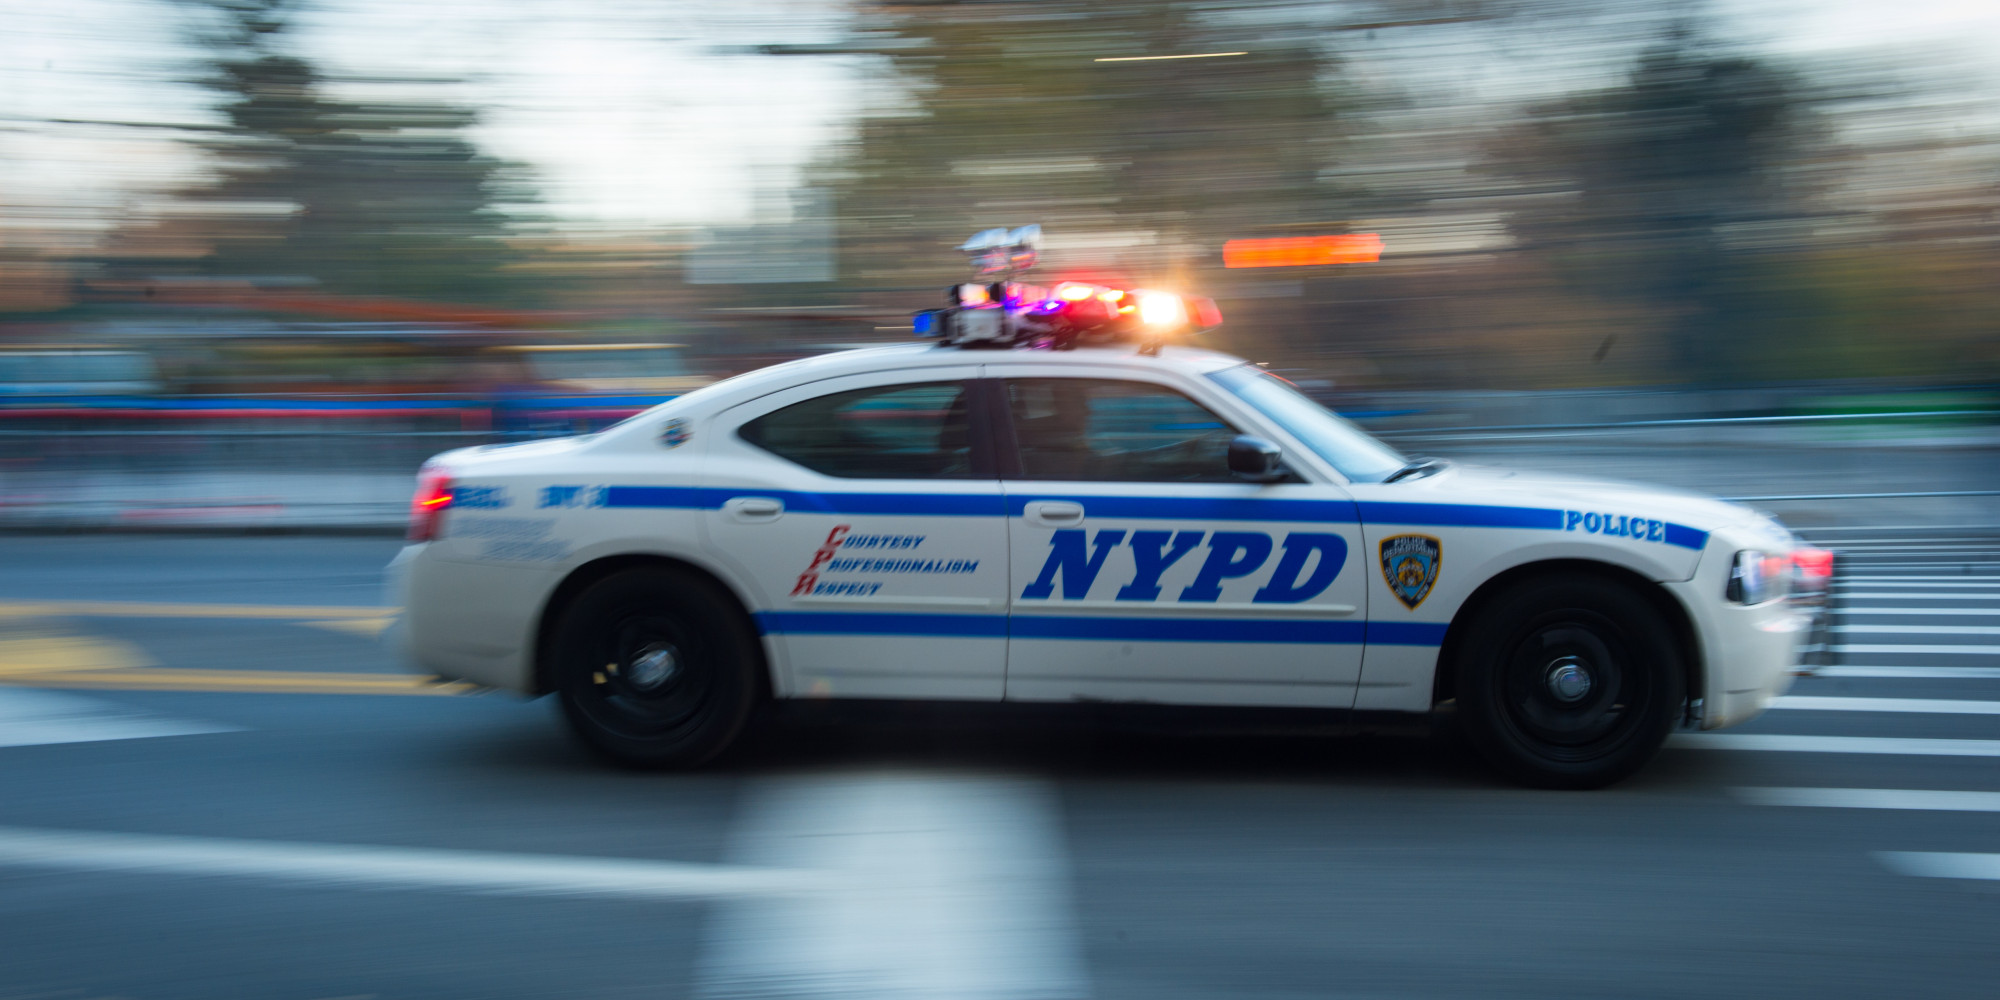 This NYPD captain thinks only stranger rape counts